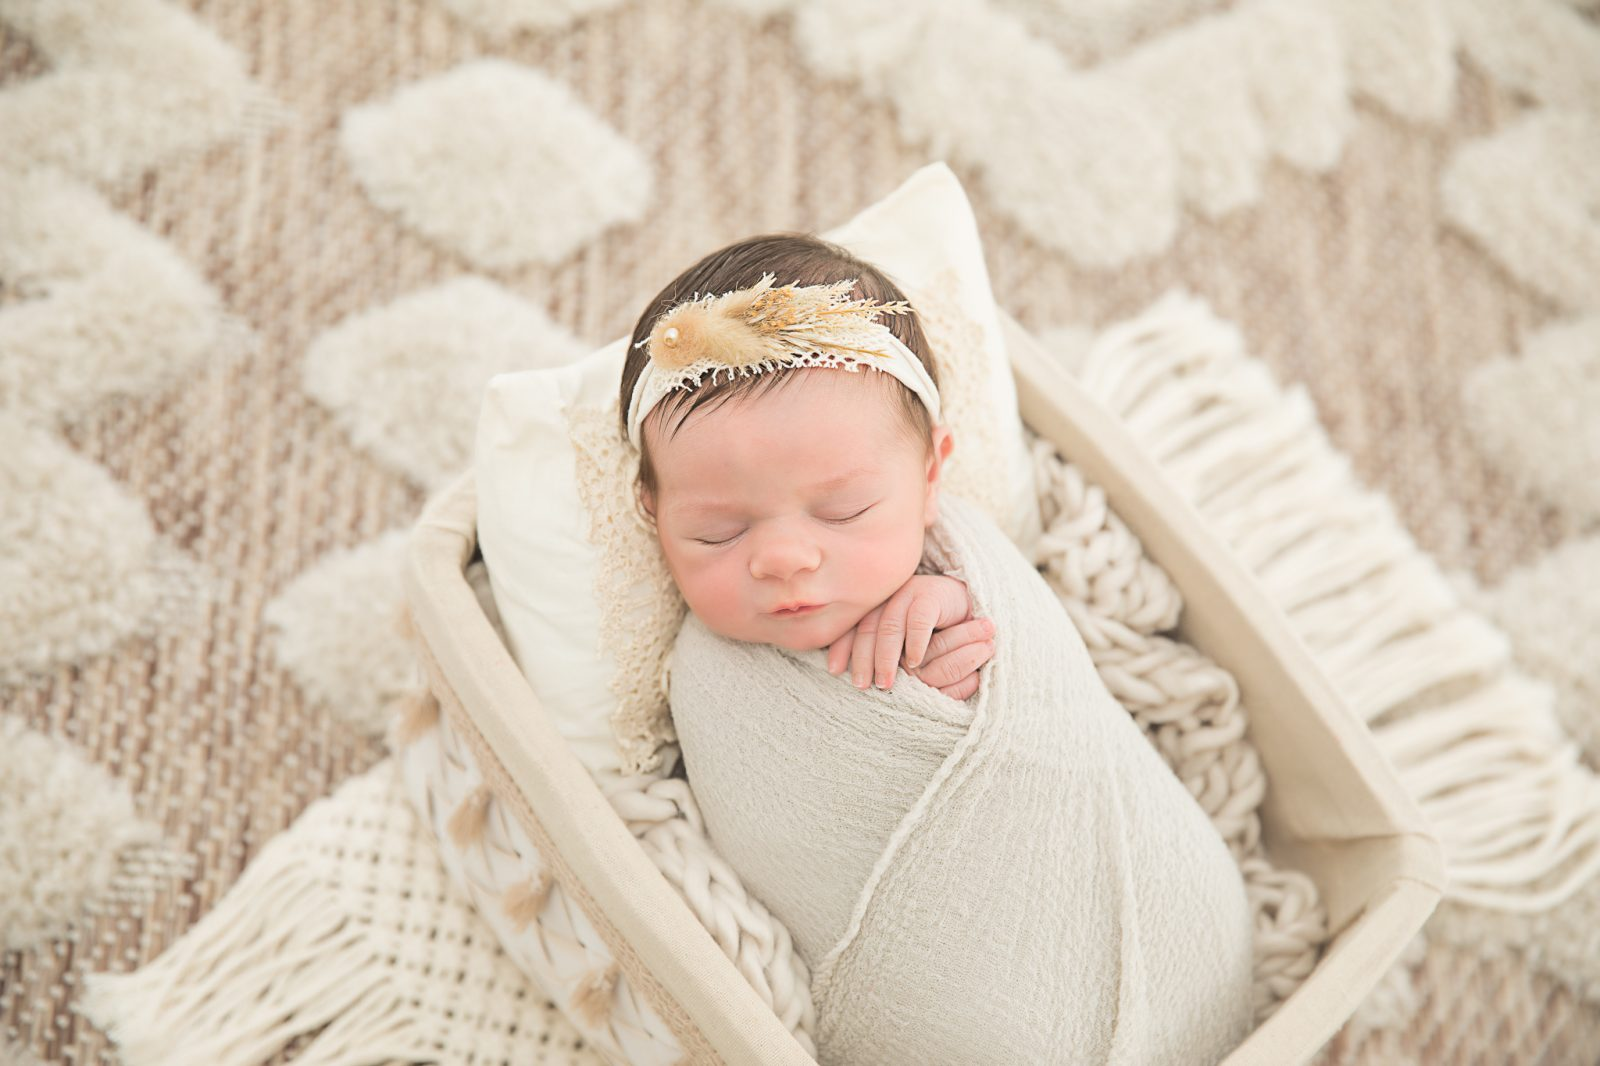 Newborn Photography in MA and Surrounding Areas